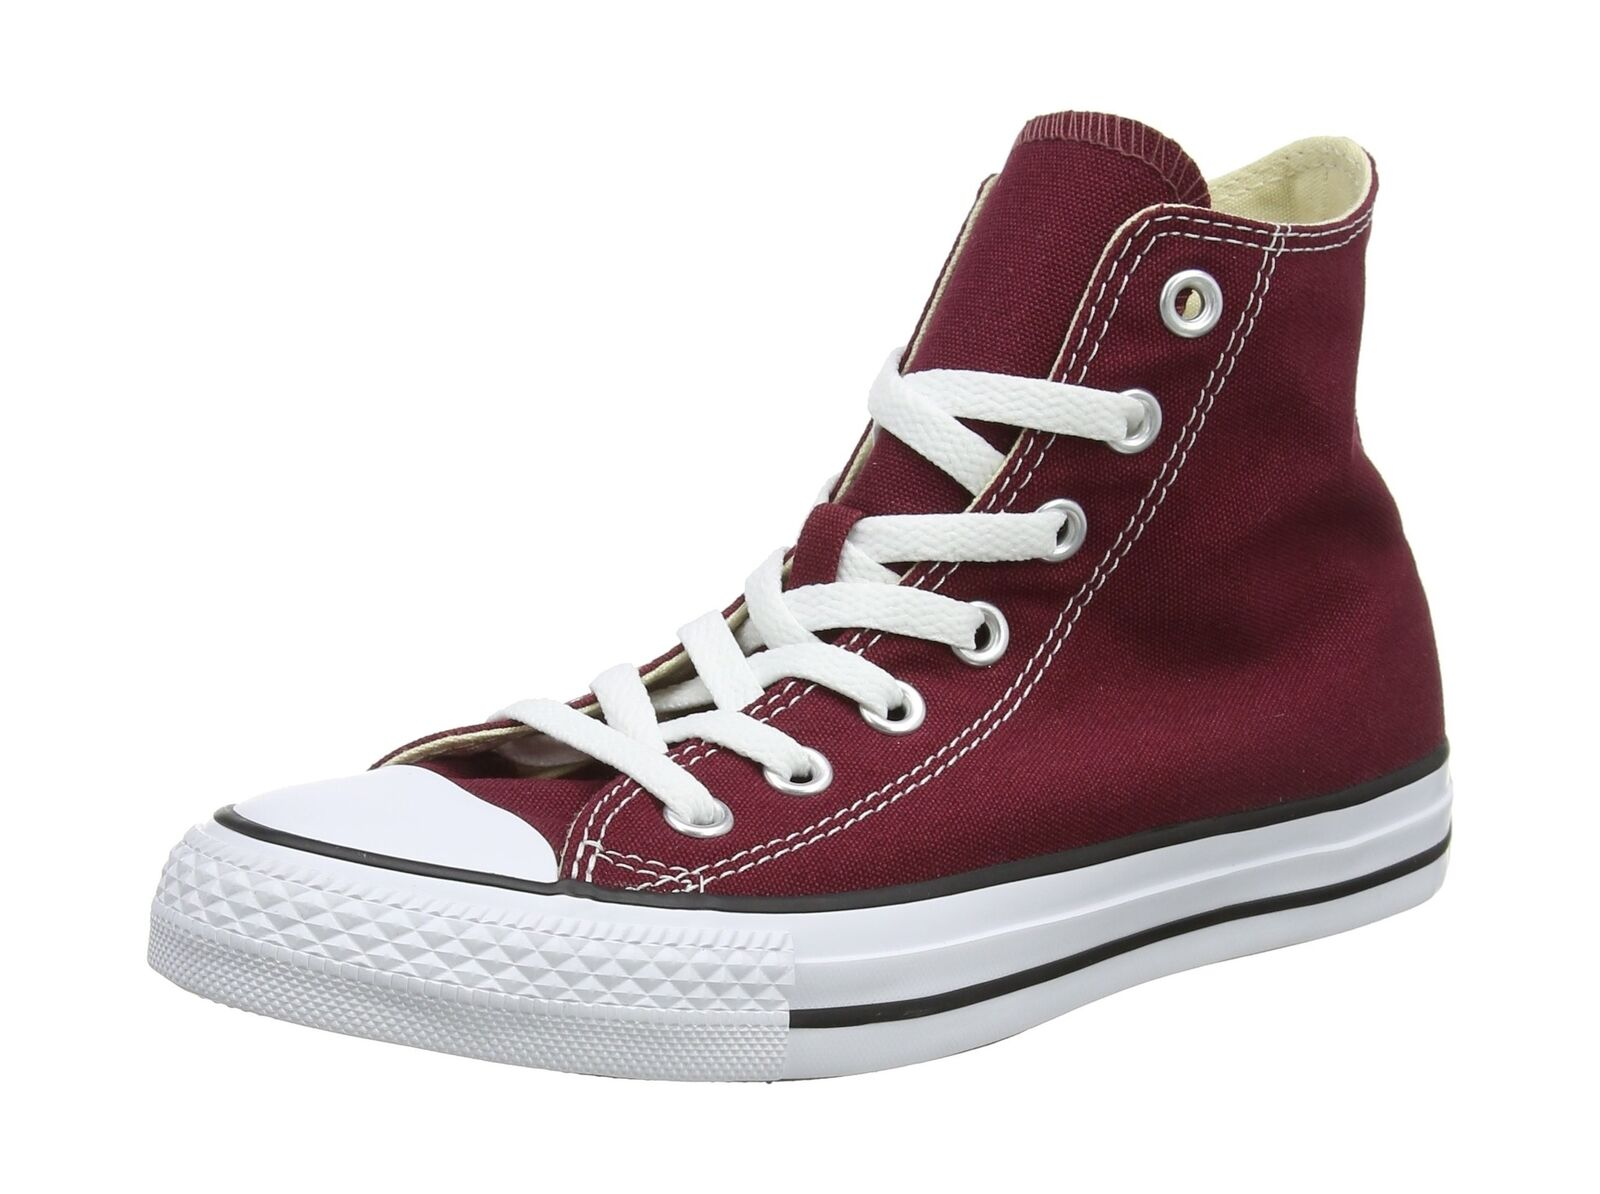 Converse Unisex Chuck Taylor As Specialty Hi Lace-Up ROT (Maroon) 4 UK